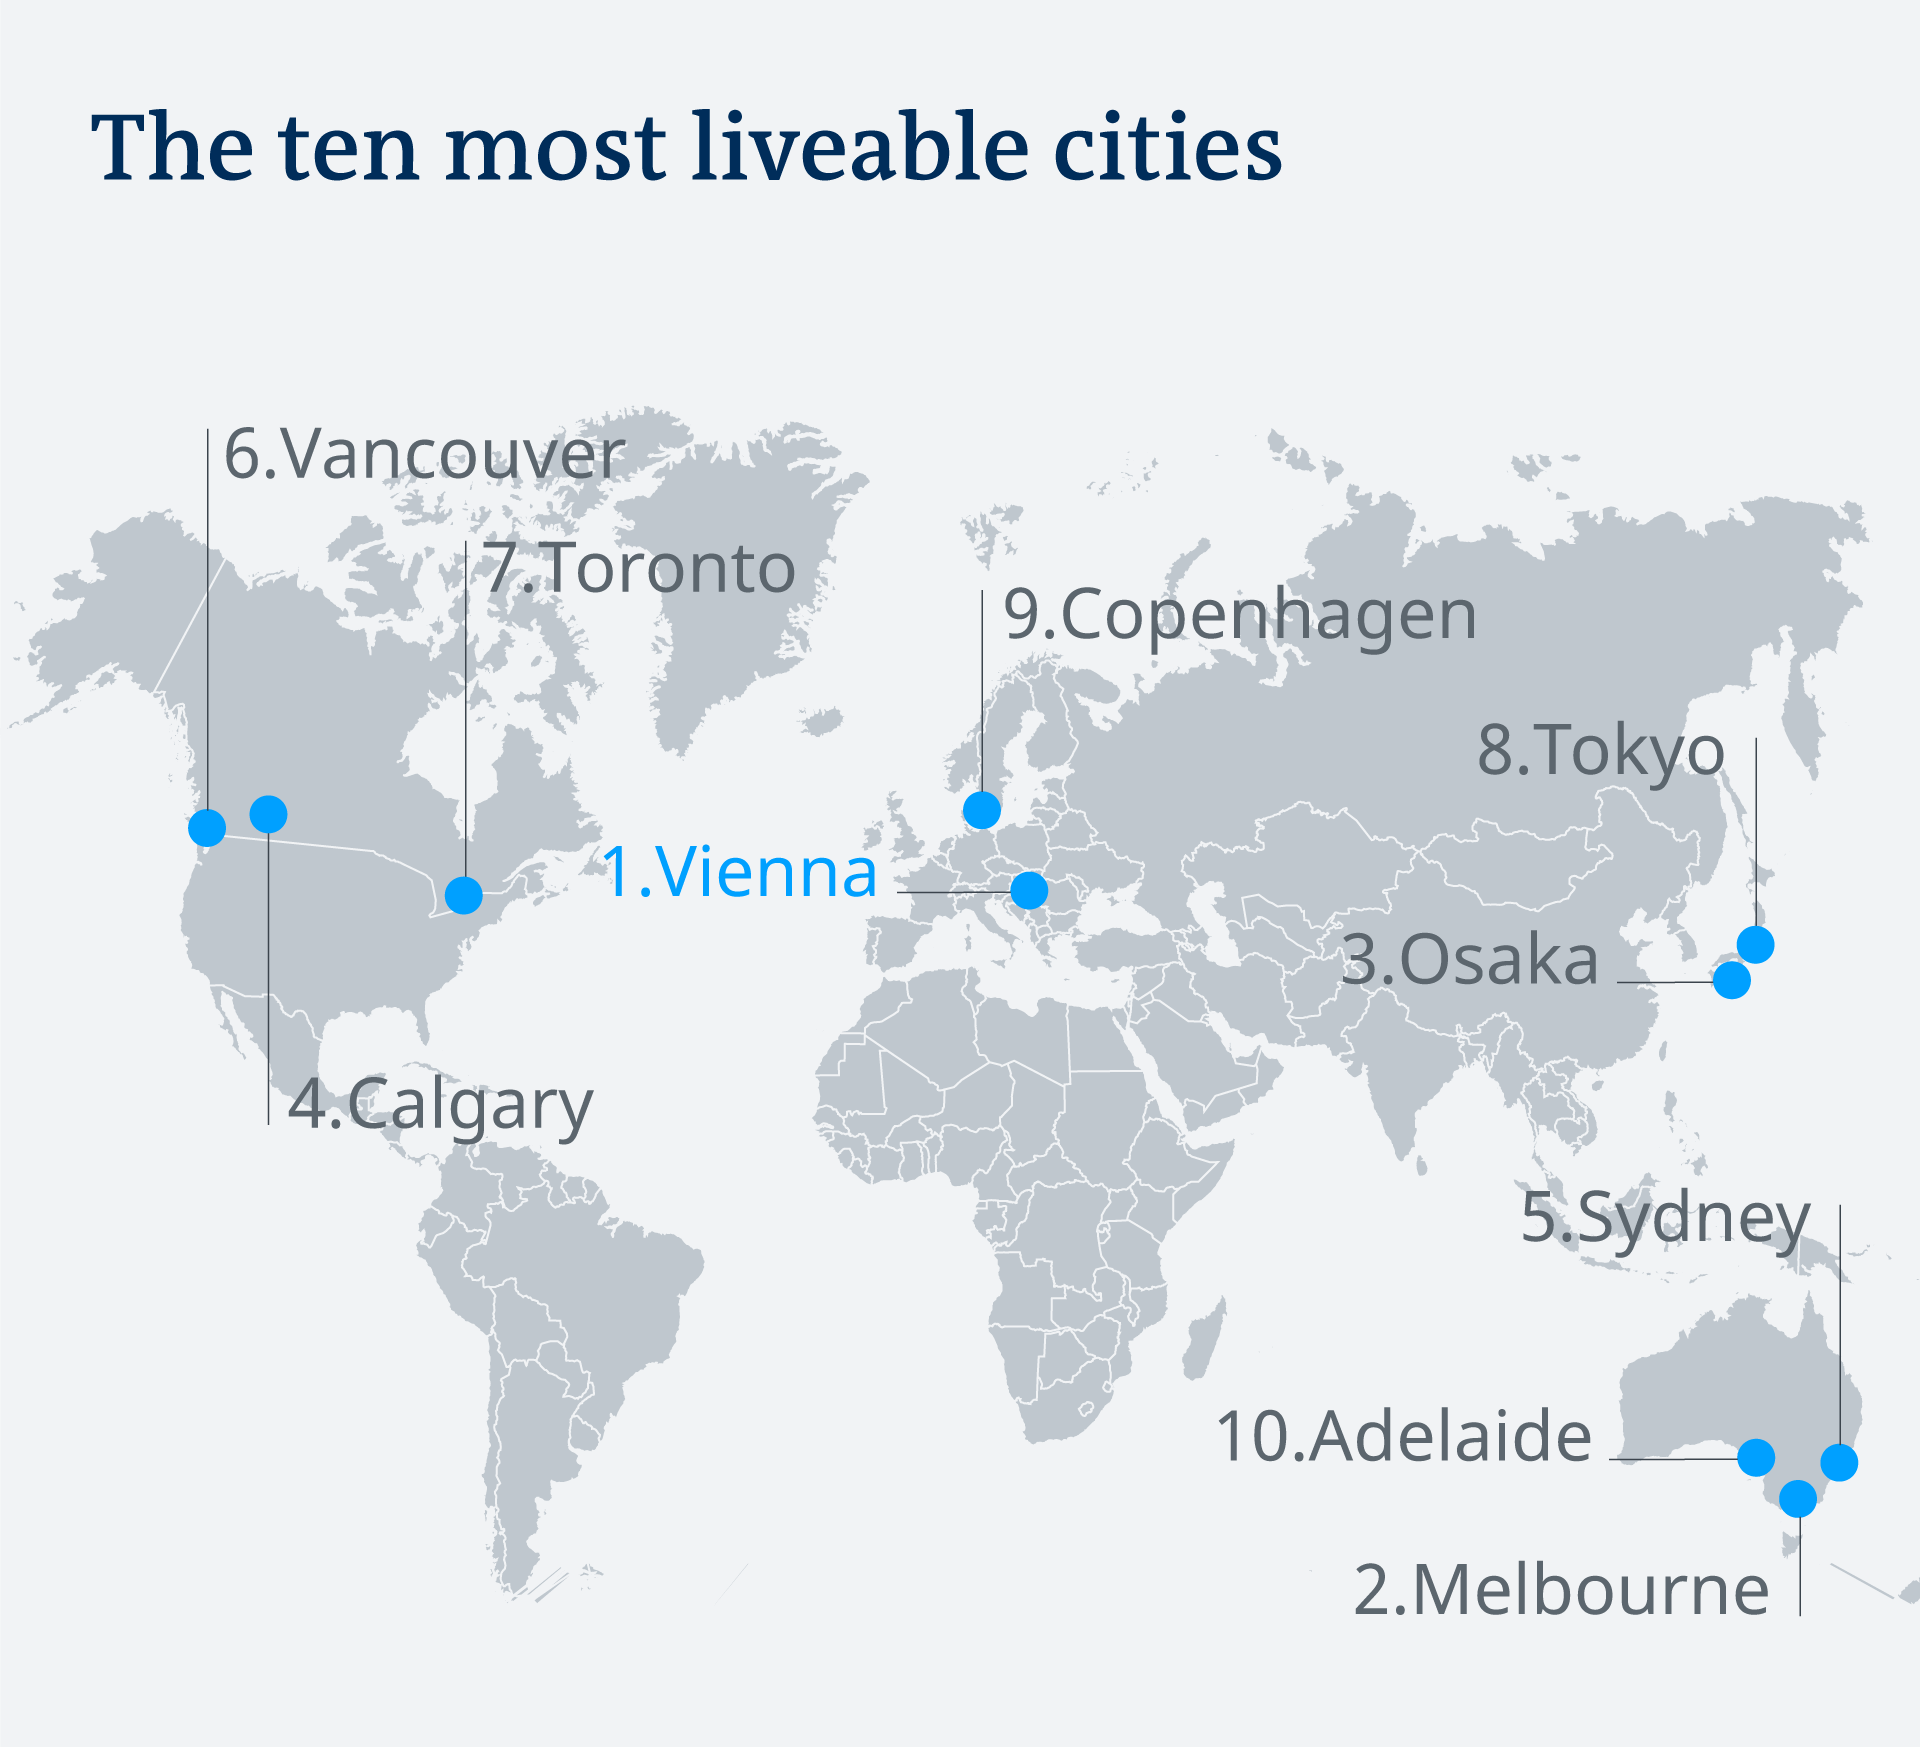 Top 10 most liveable cities Source The Economist Intelligence Unit